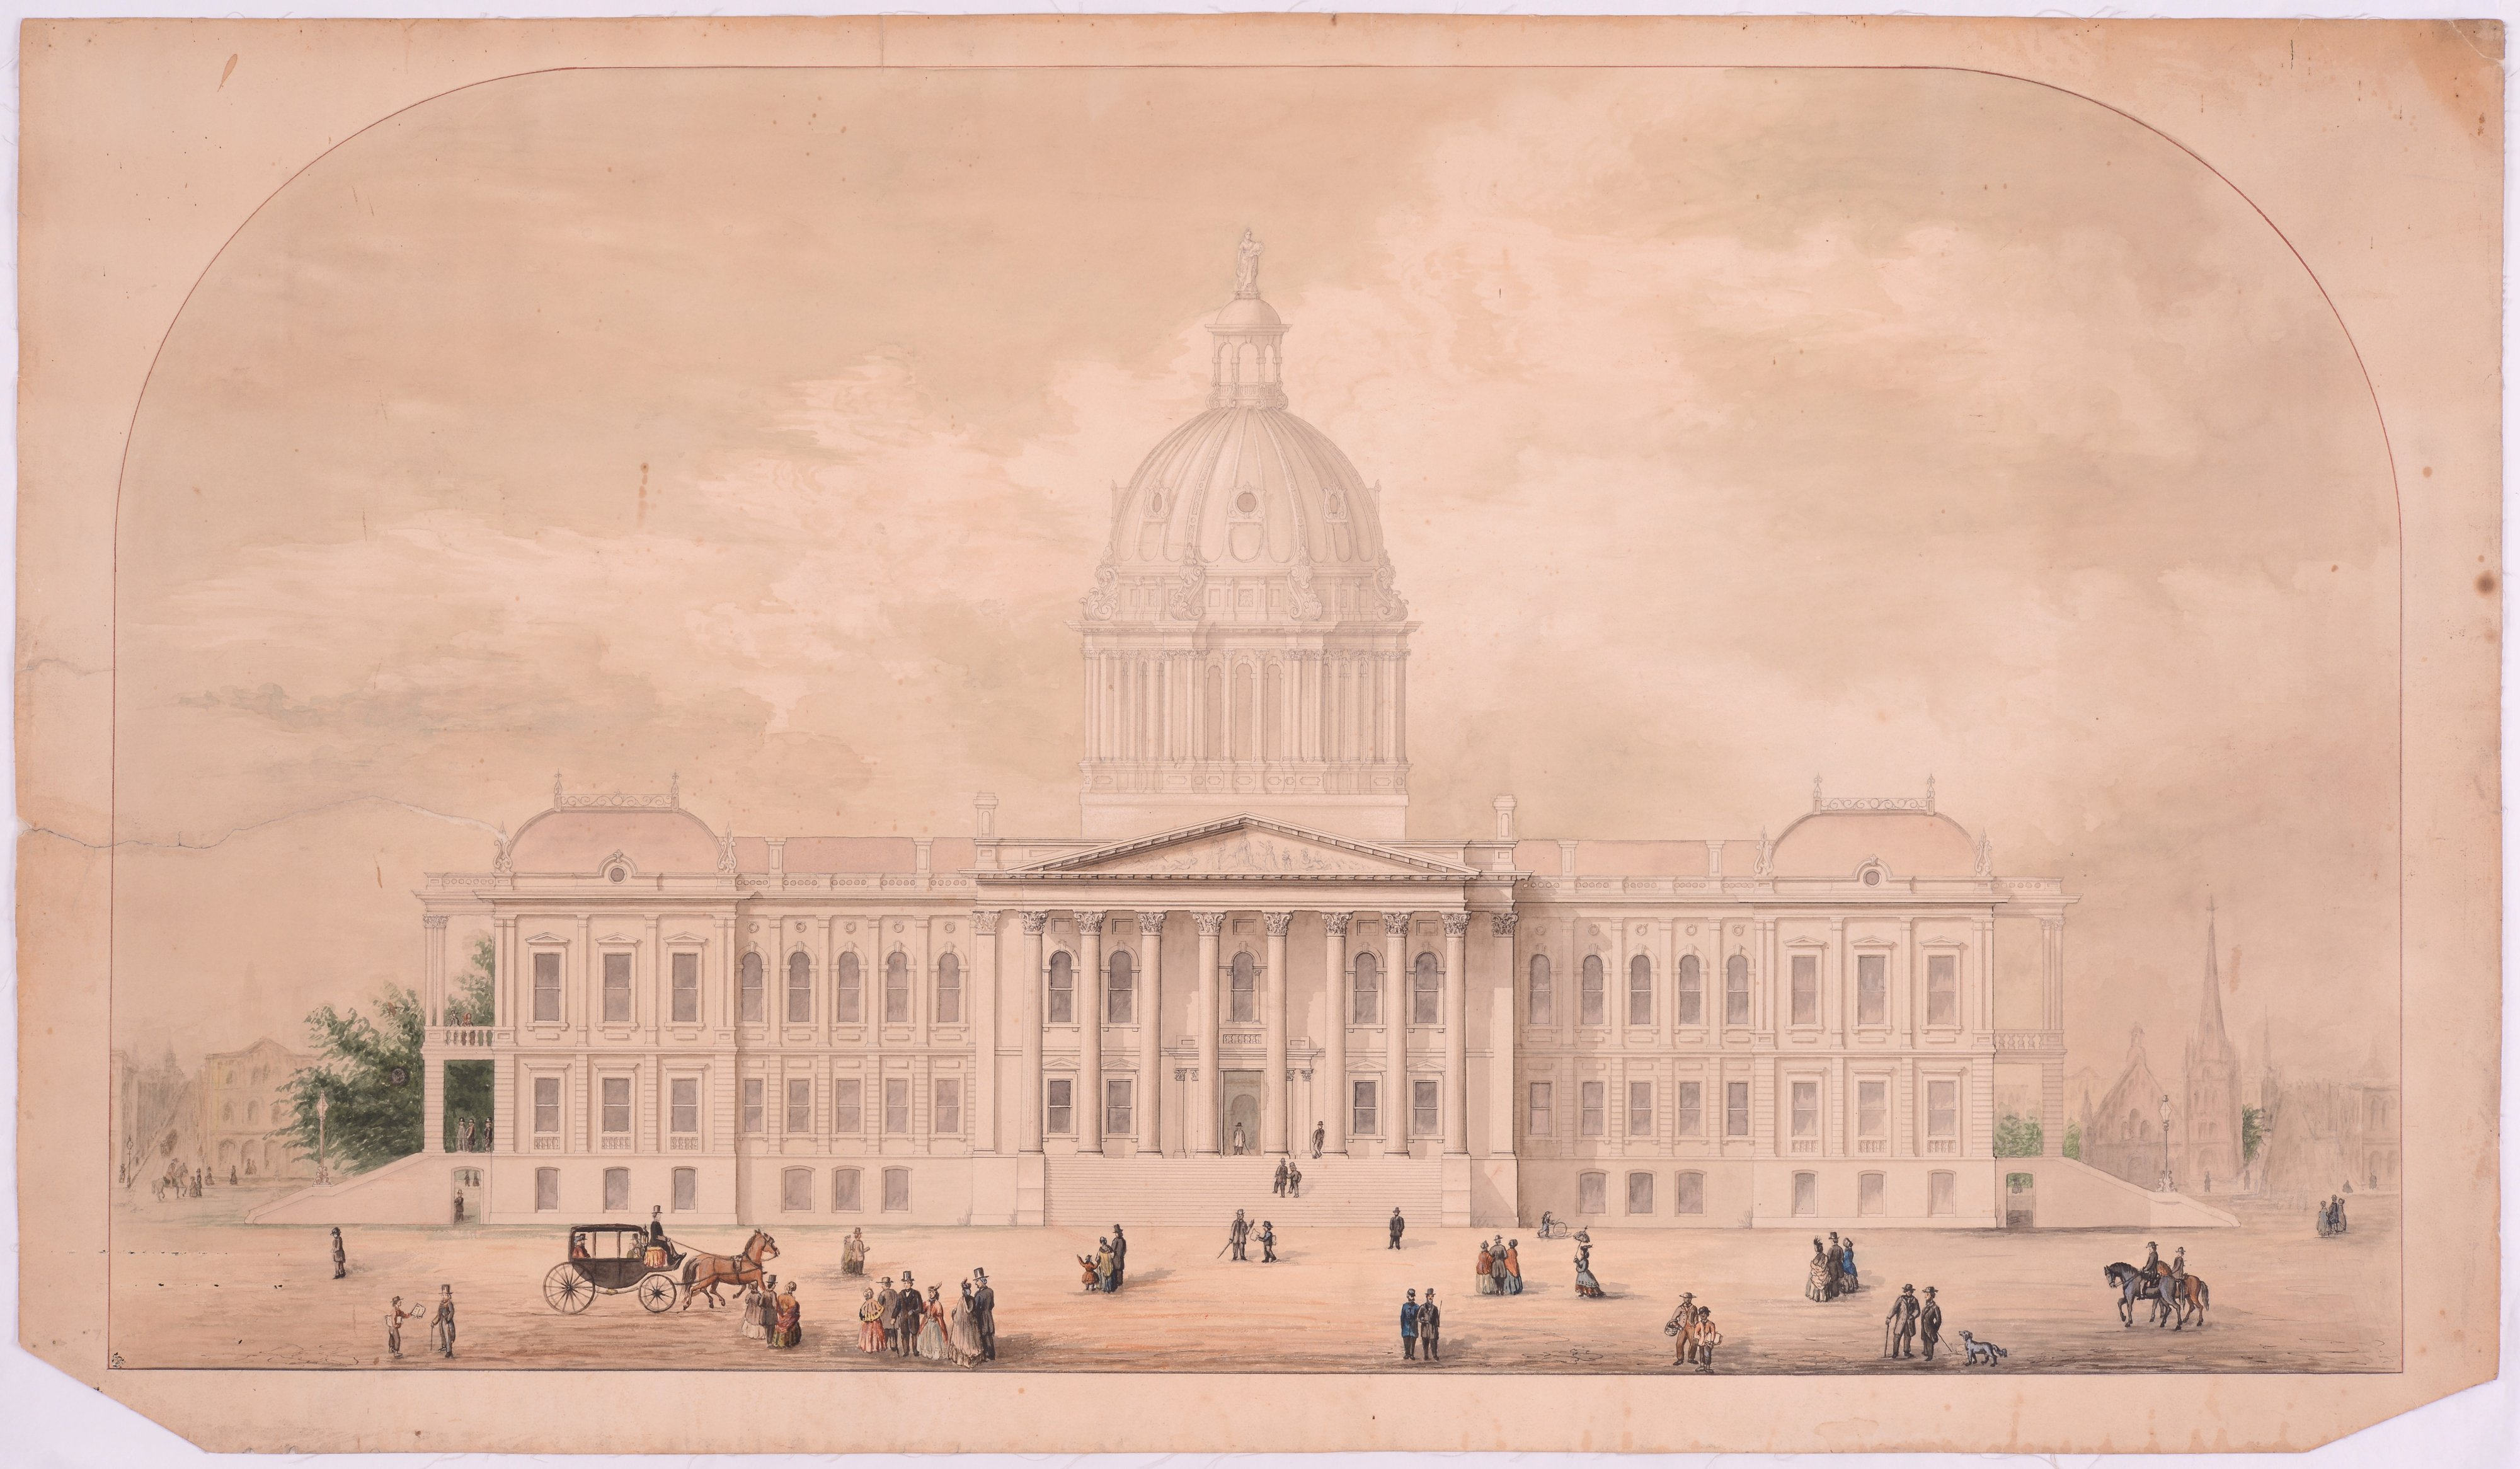 Original drawing for Kansas Capitol Building, Topeka, Kansas